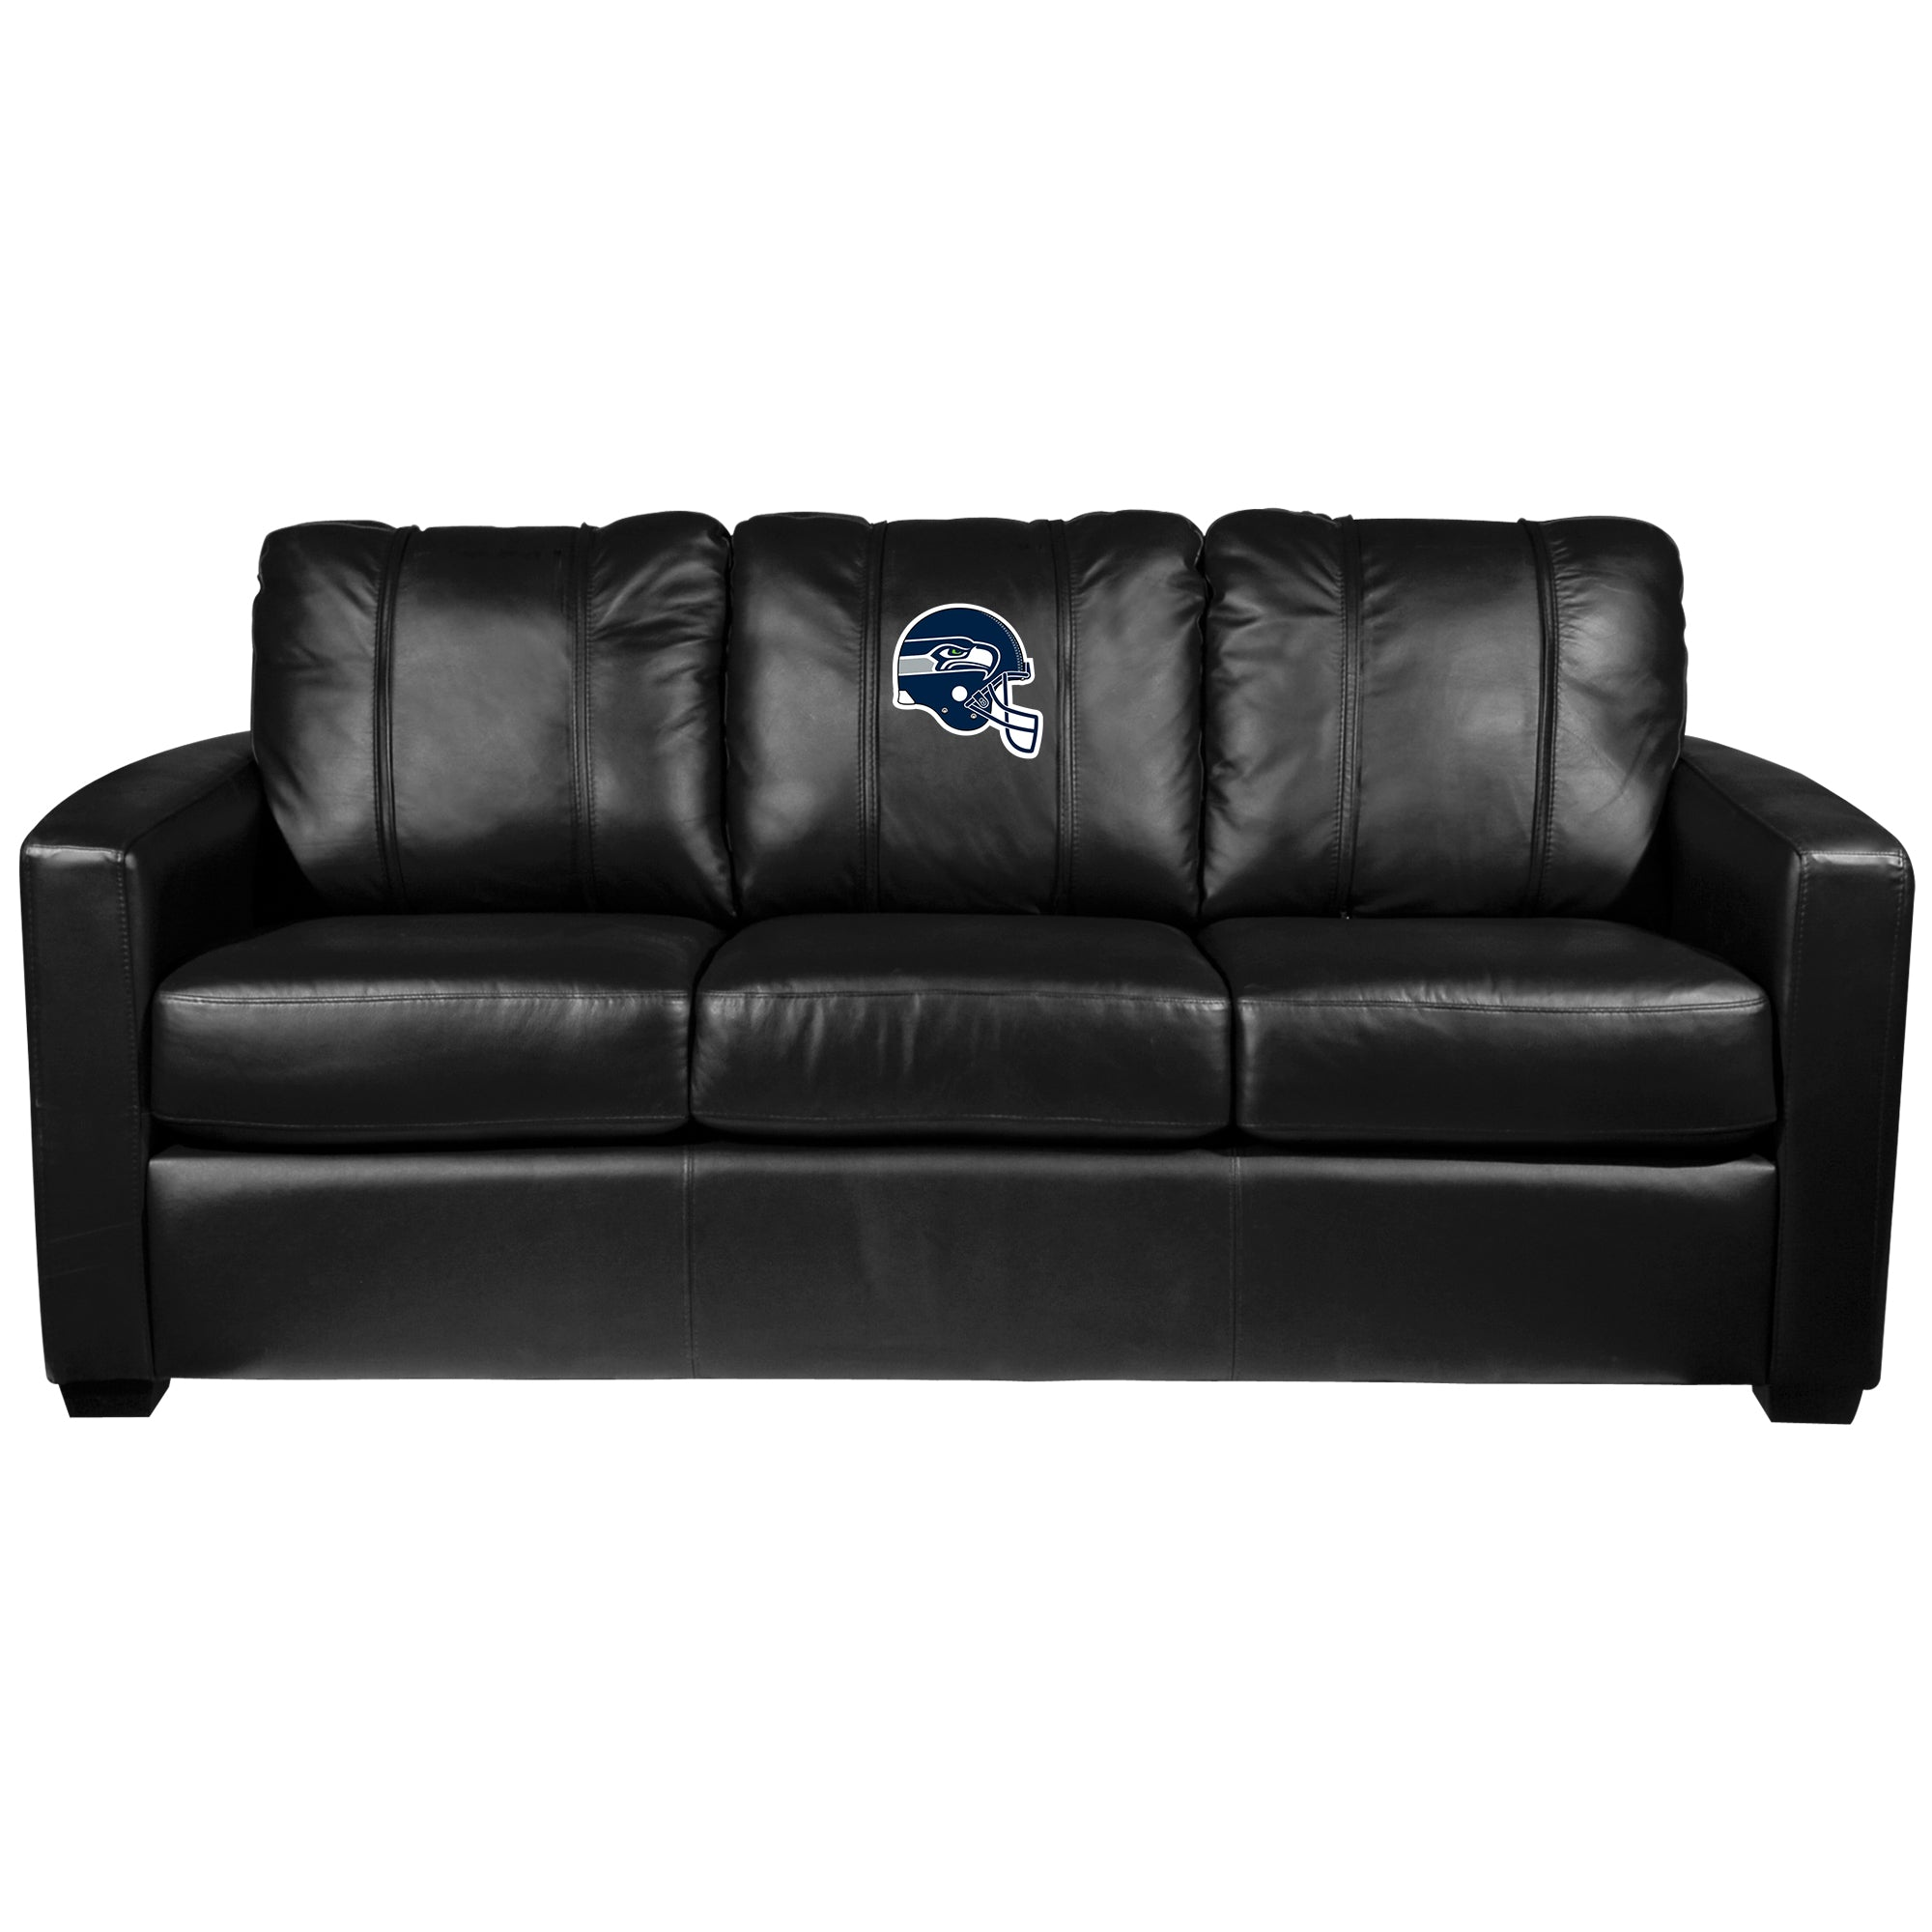 Silver Sofa with  Seattle Seahawks Helmet Logo